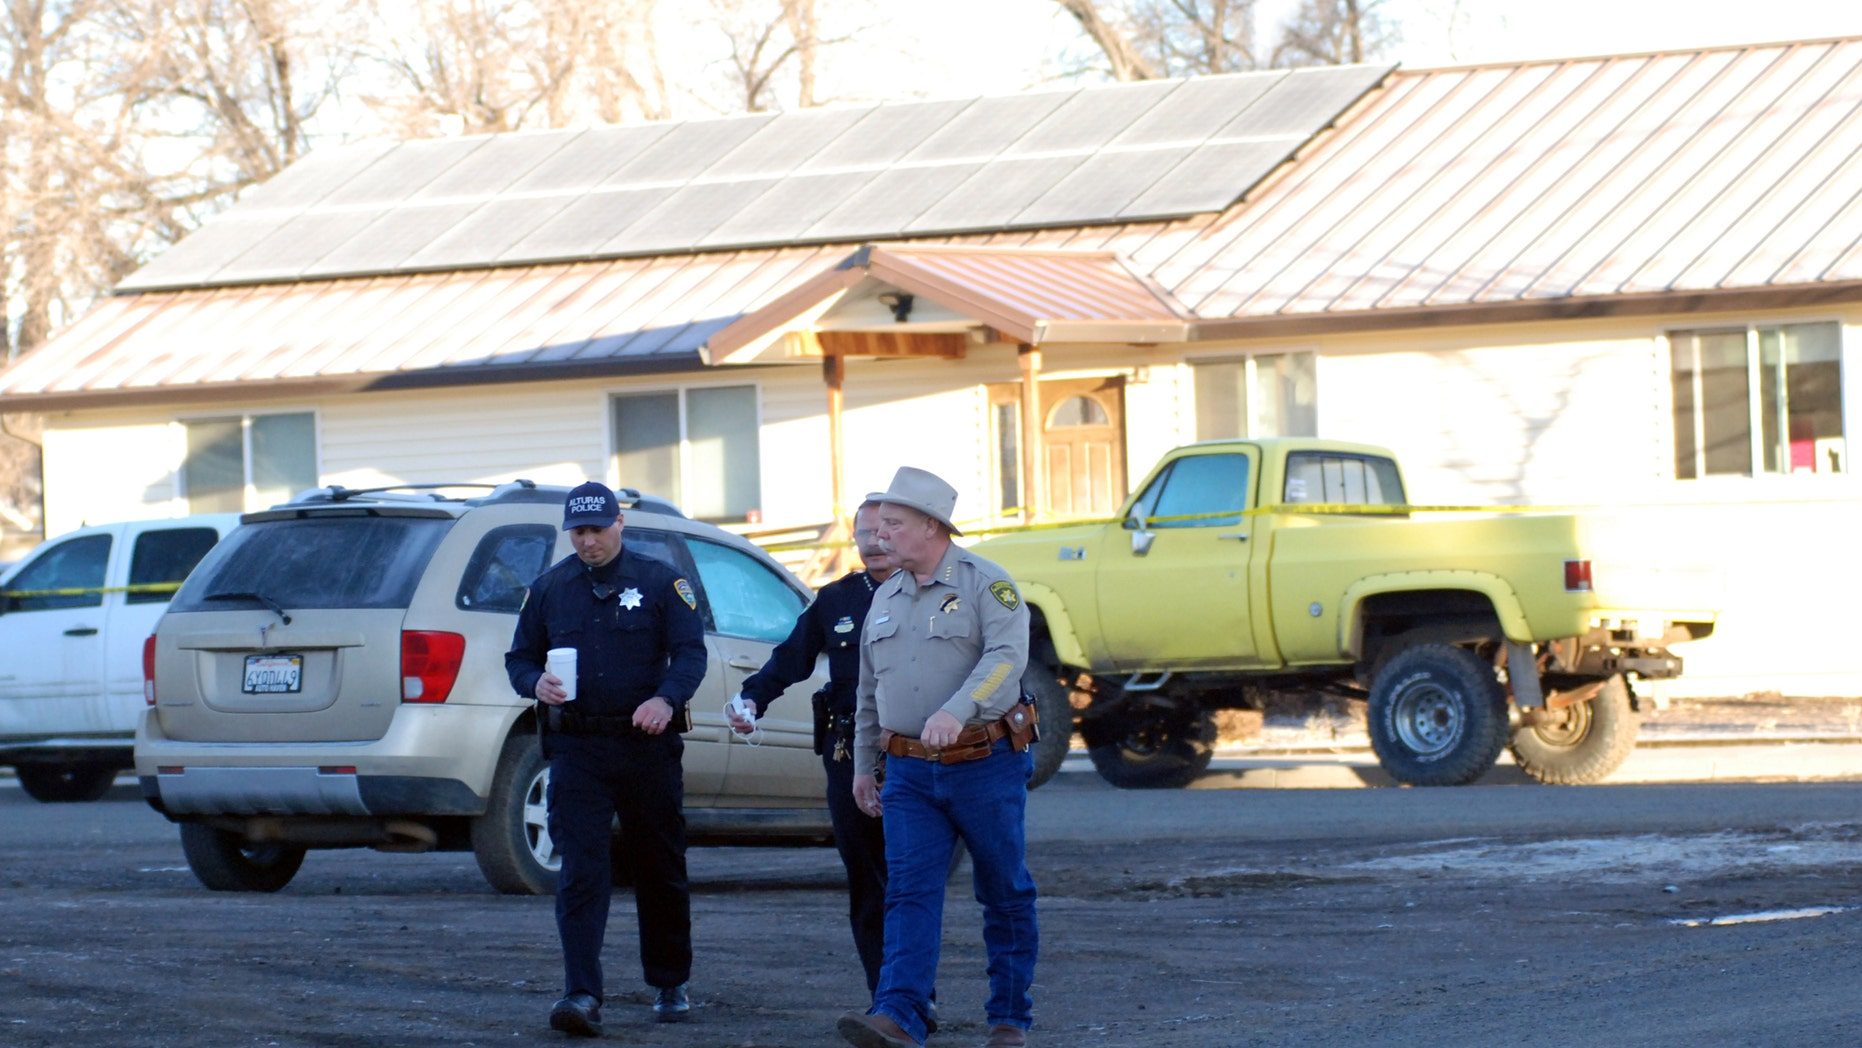 Feb. 21, 2014: Modoc County Sheriff and Coroner Mike Poindexter, right, walks away from the Cedarville Rancheria tribal headquarters building in Alturas, Calif.